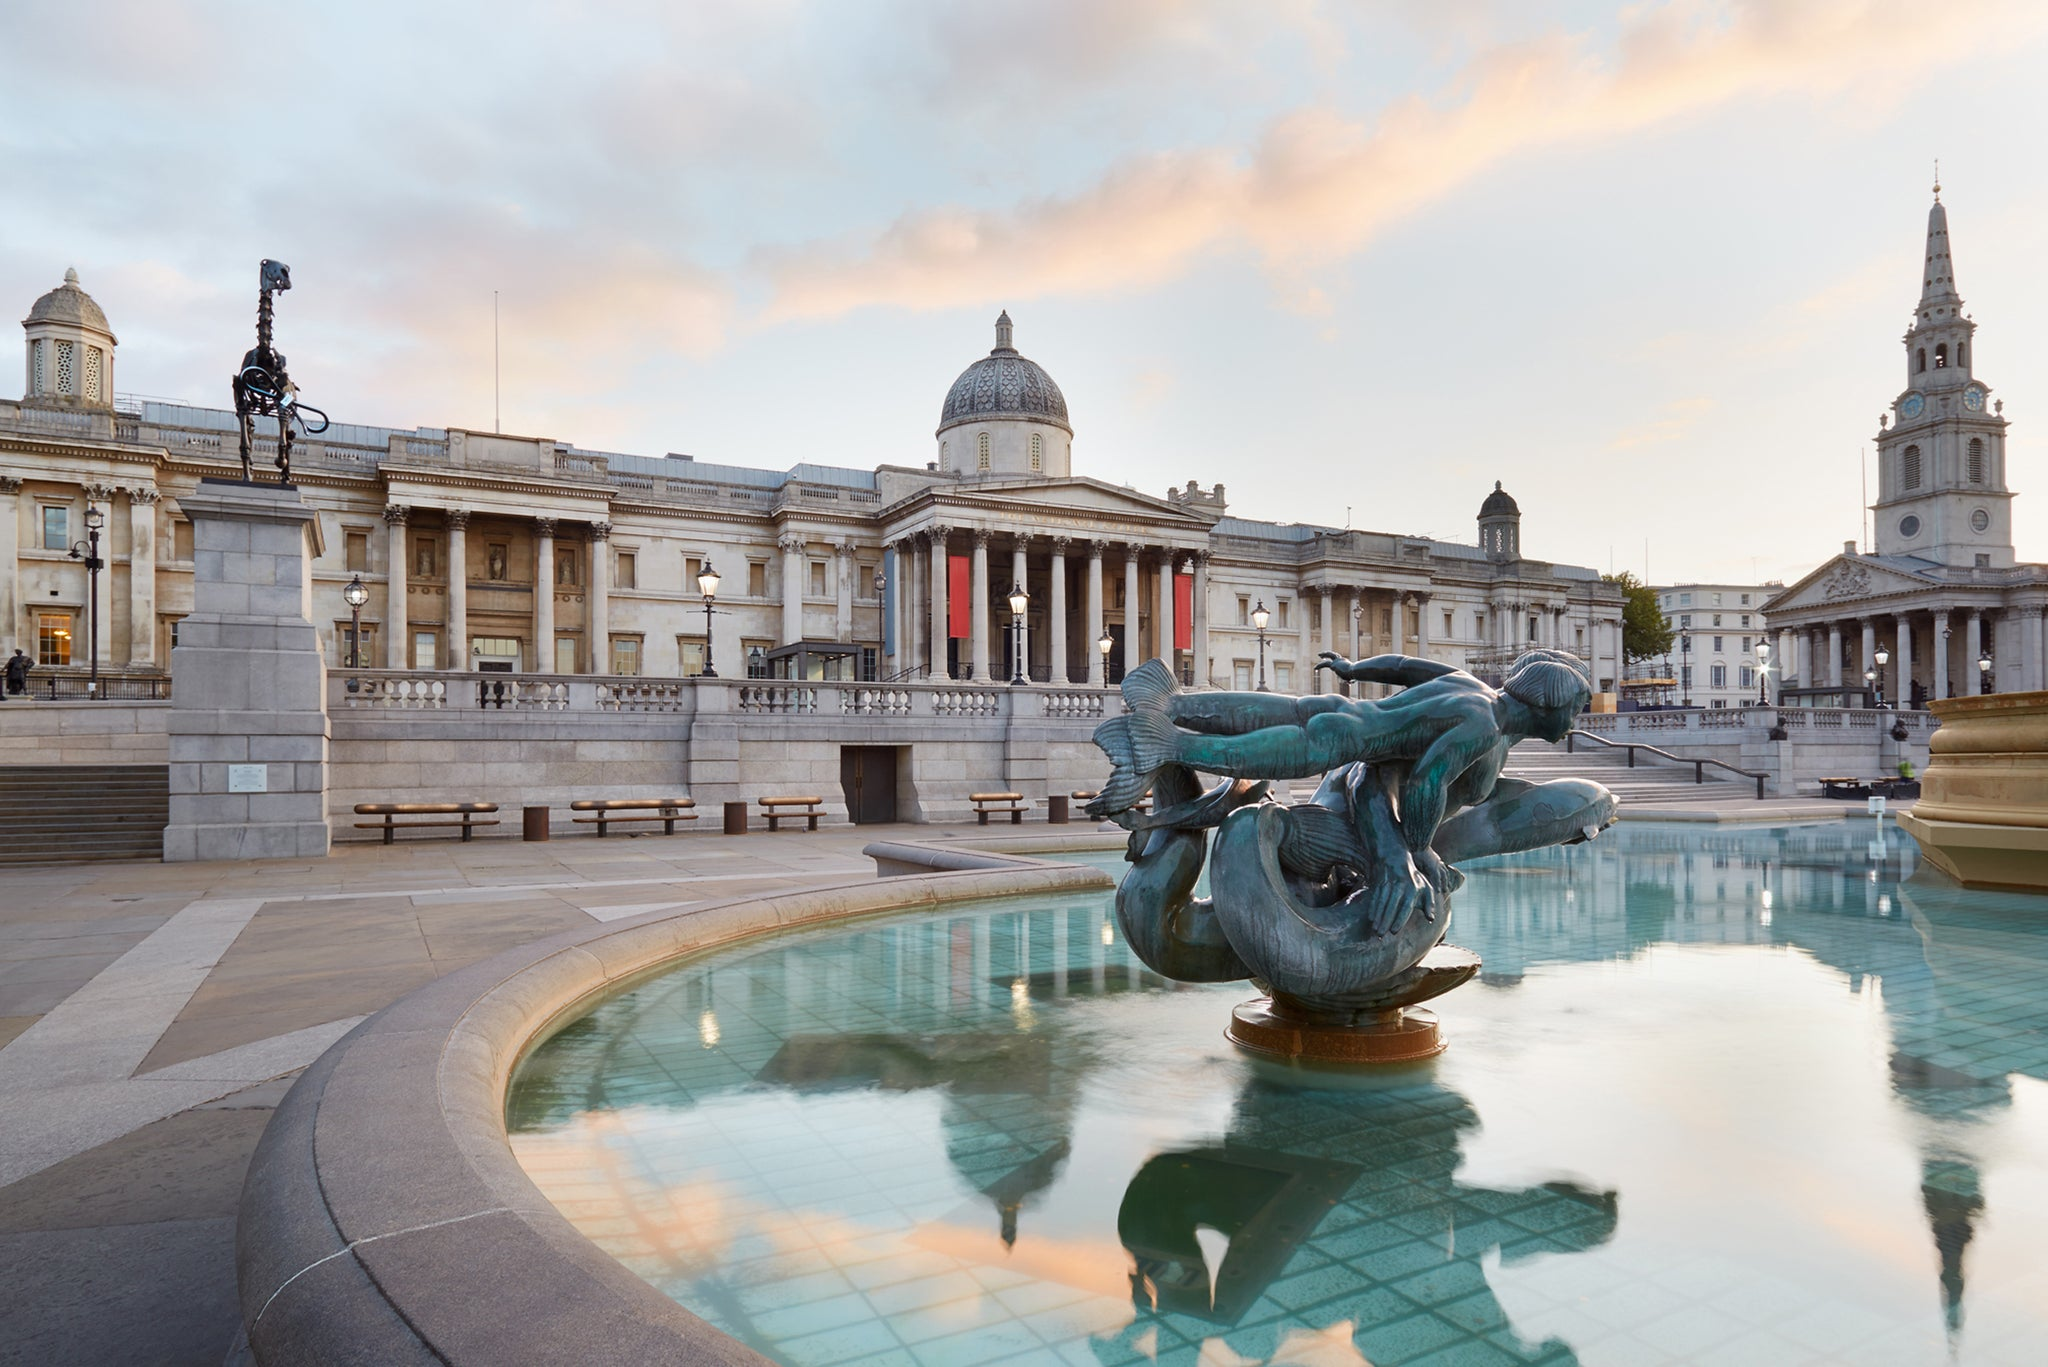 The National Gallery Indoor Quiz and Scavenger Hunt